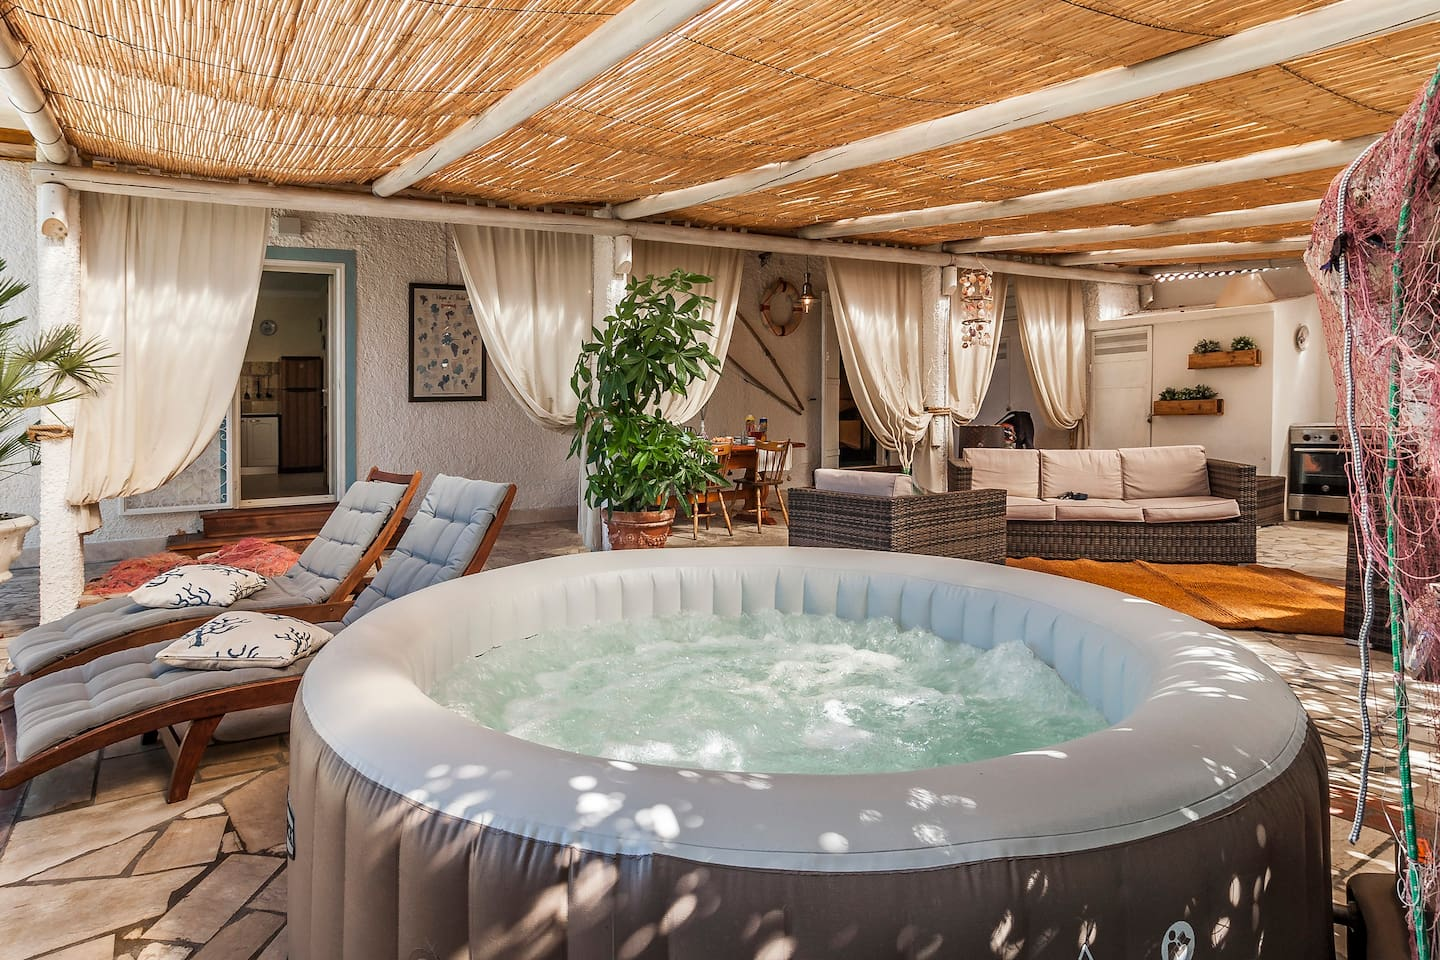 Villa with Indoor Jacuzzi Garden and Swimming Pool - Villas for Rent ...